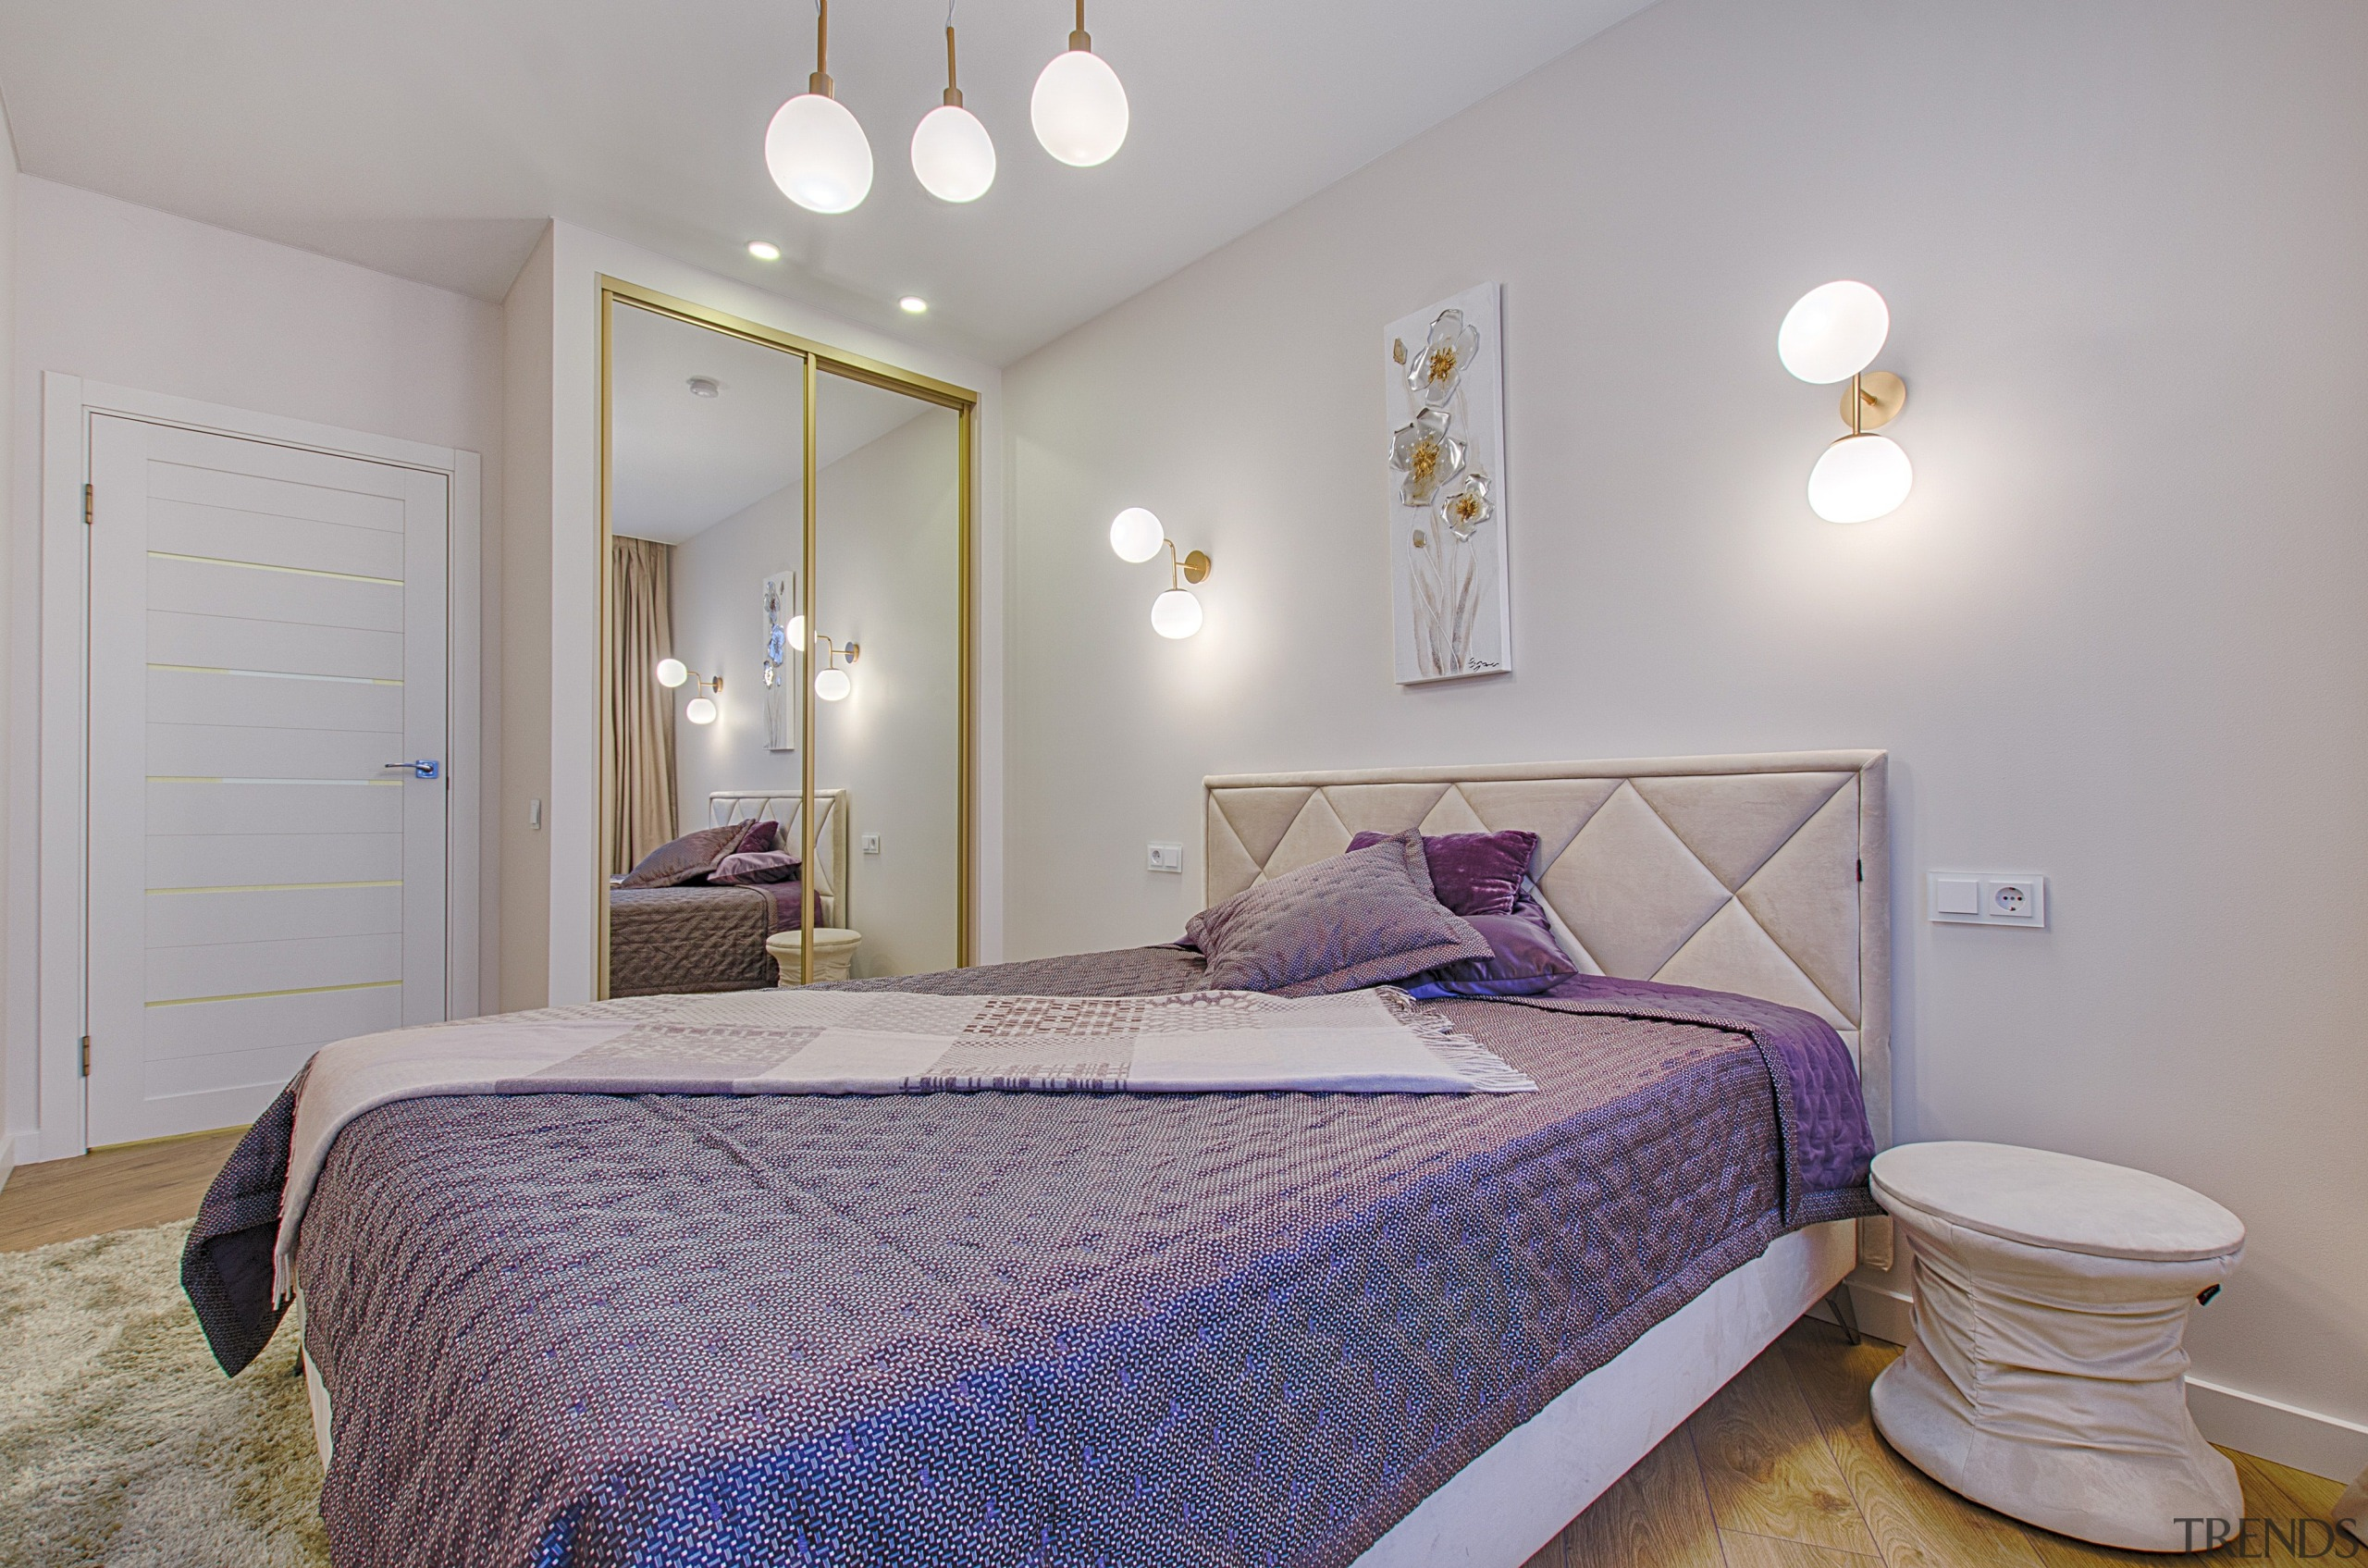 A floor length mirror hung vertically is not architecture, bed, bed frame, bed sheet, bedding, bedroom, building, ceiling, duvet cover, floor, furniture, hardwood, home, house, interior design, mattress, mattress pad, nightstand, property, purple, real estate, room, wall, gray